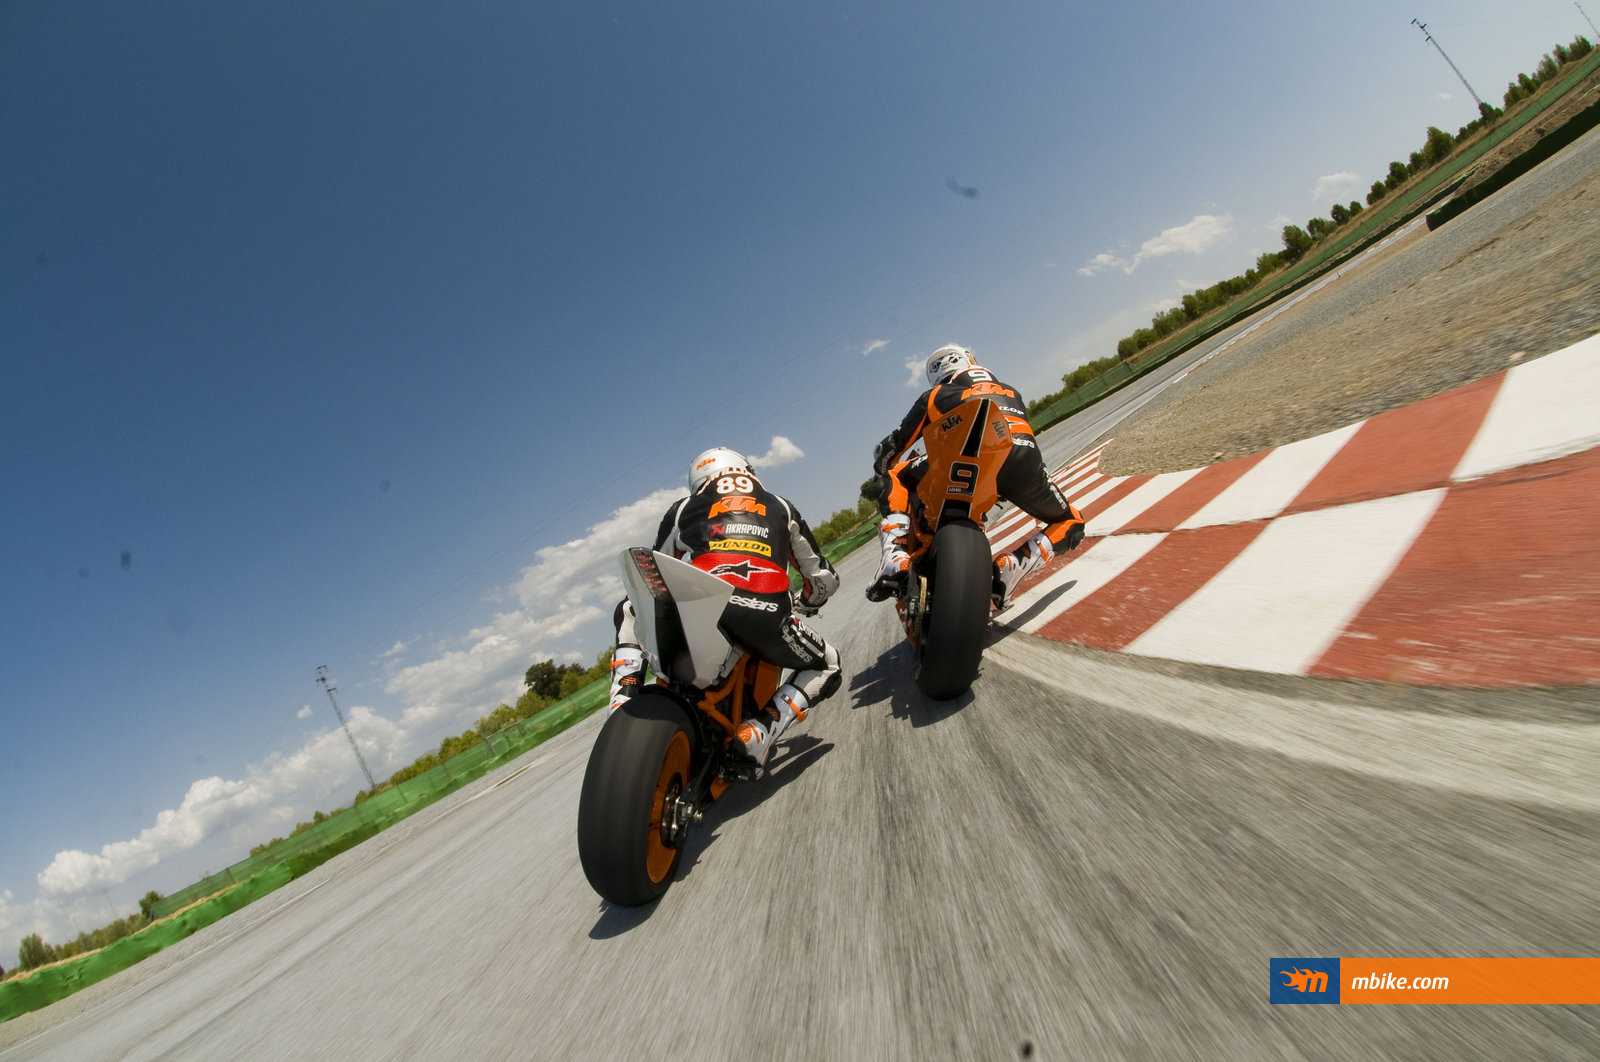 2011 KTM RC8 R Wallpaper   Mbikecom 1600x1062